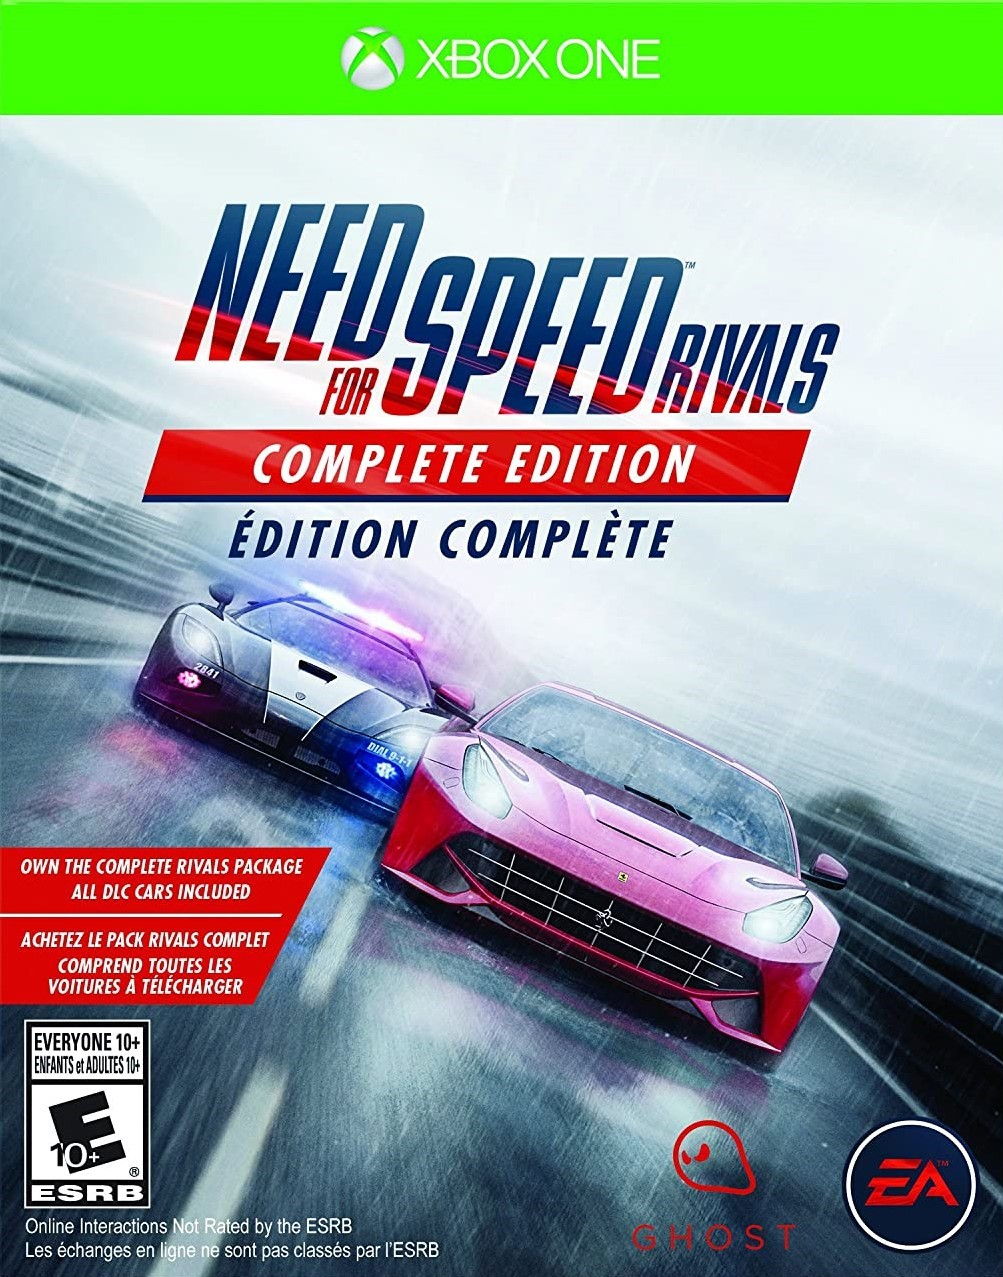 XONE Need For Speed Rivals Complete Edition Nové